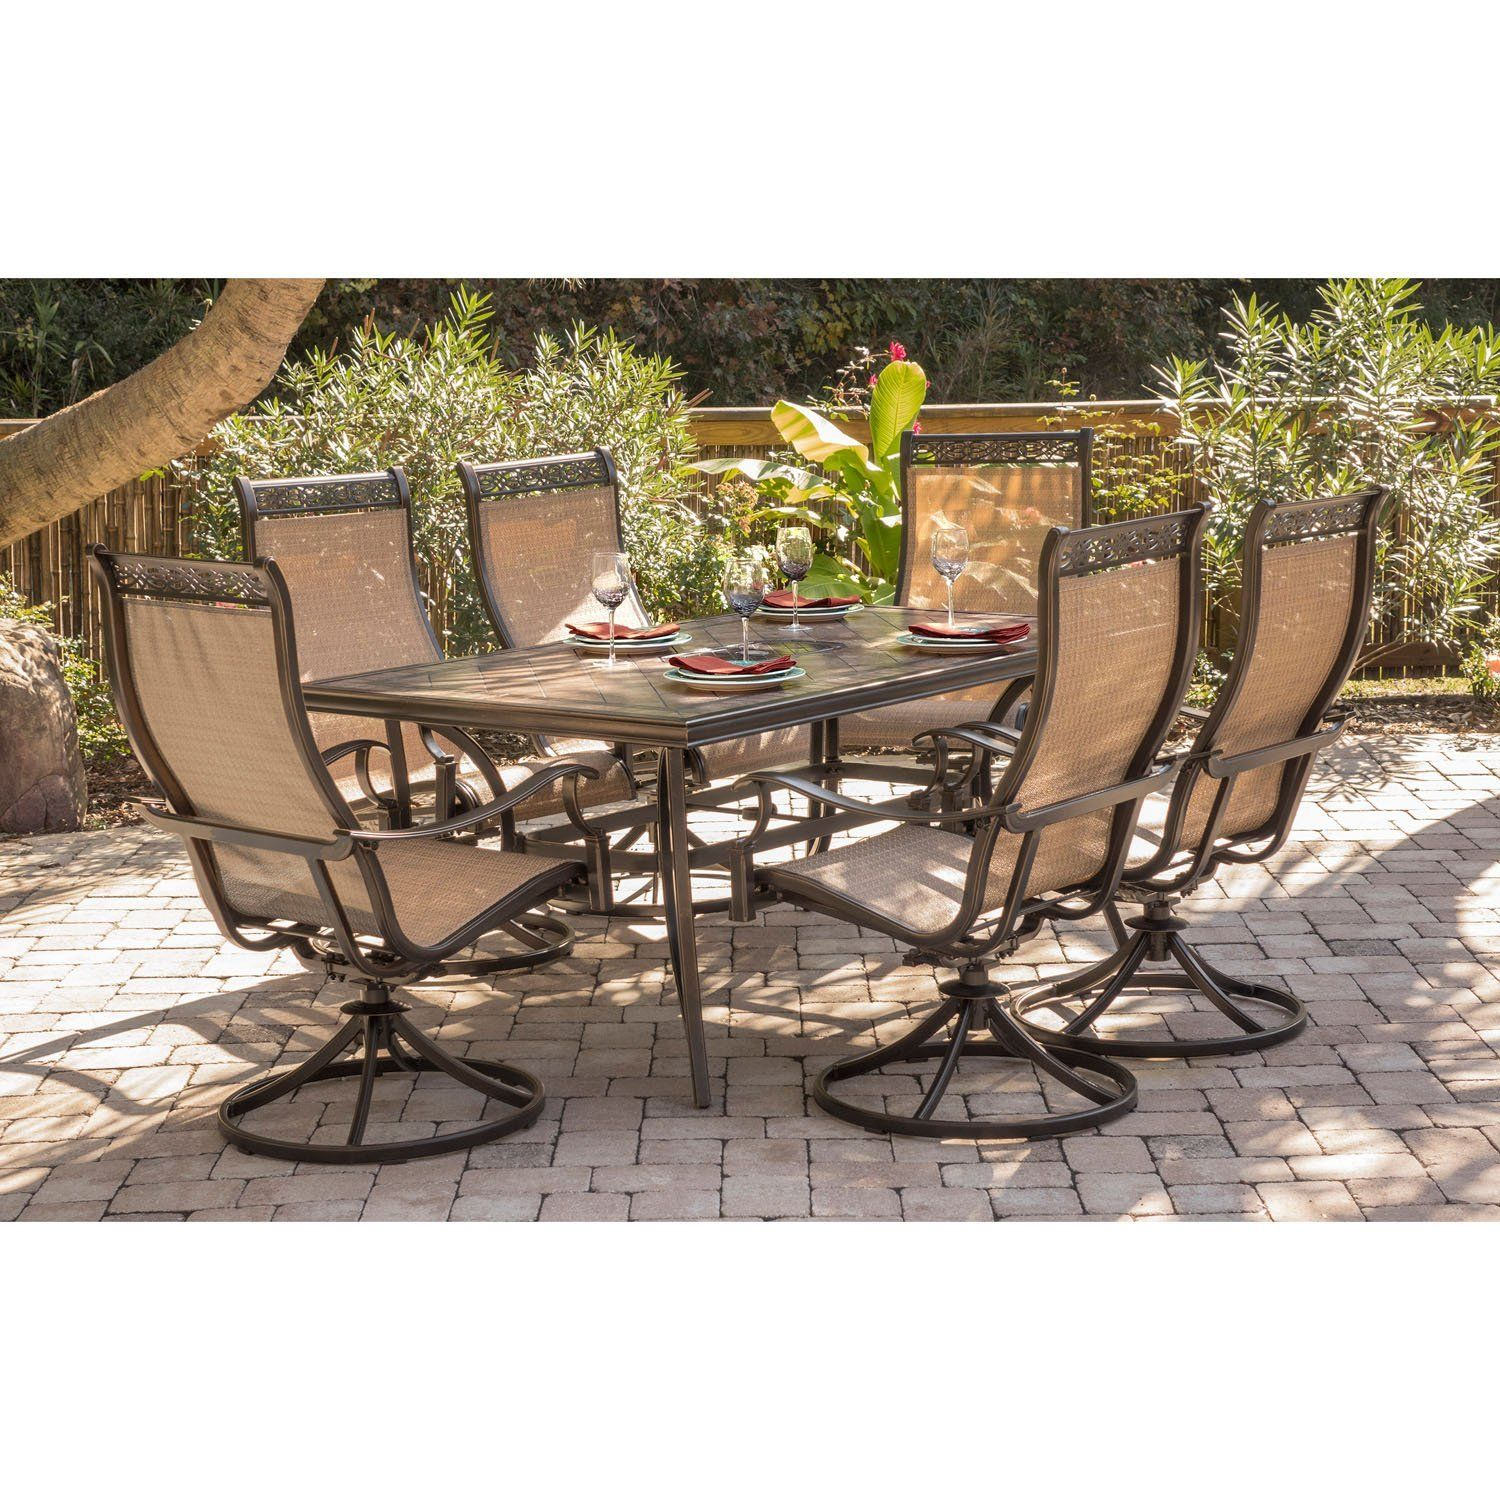 Hanover monaco outdoor patio furniture 7 piece dining set with six swivel rockers